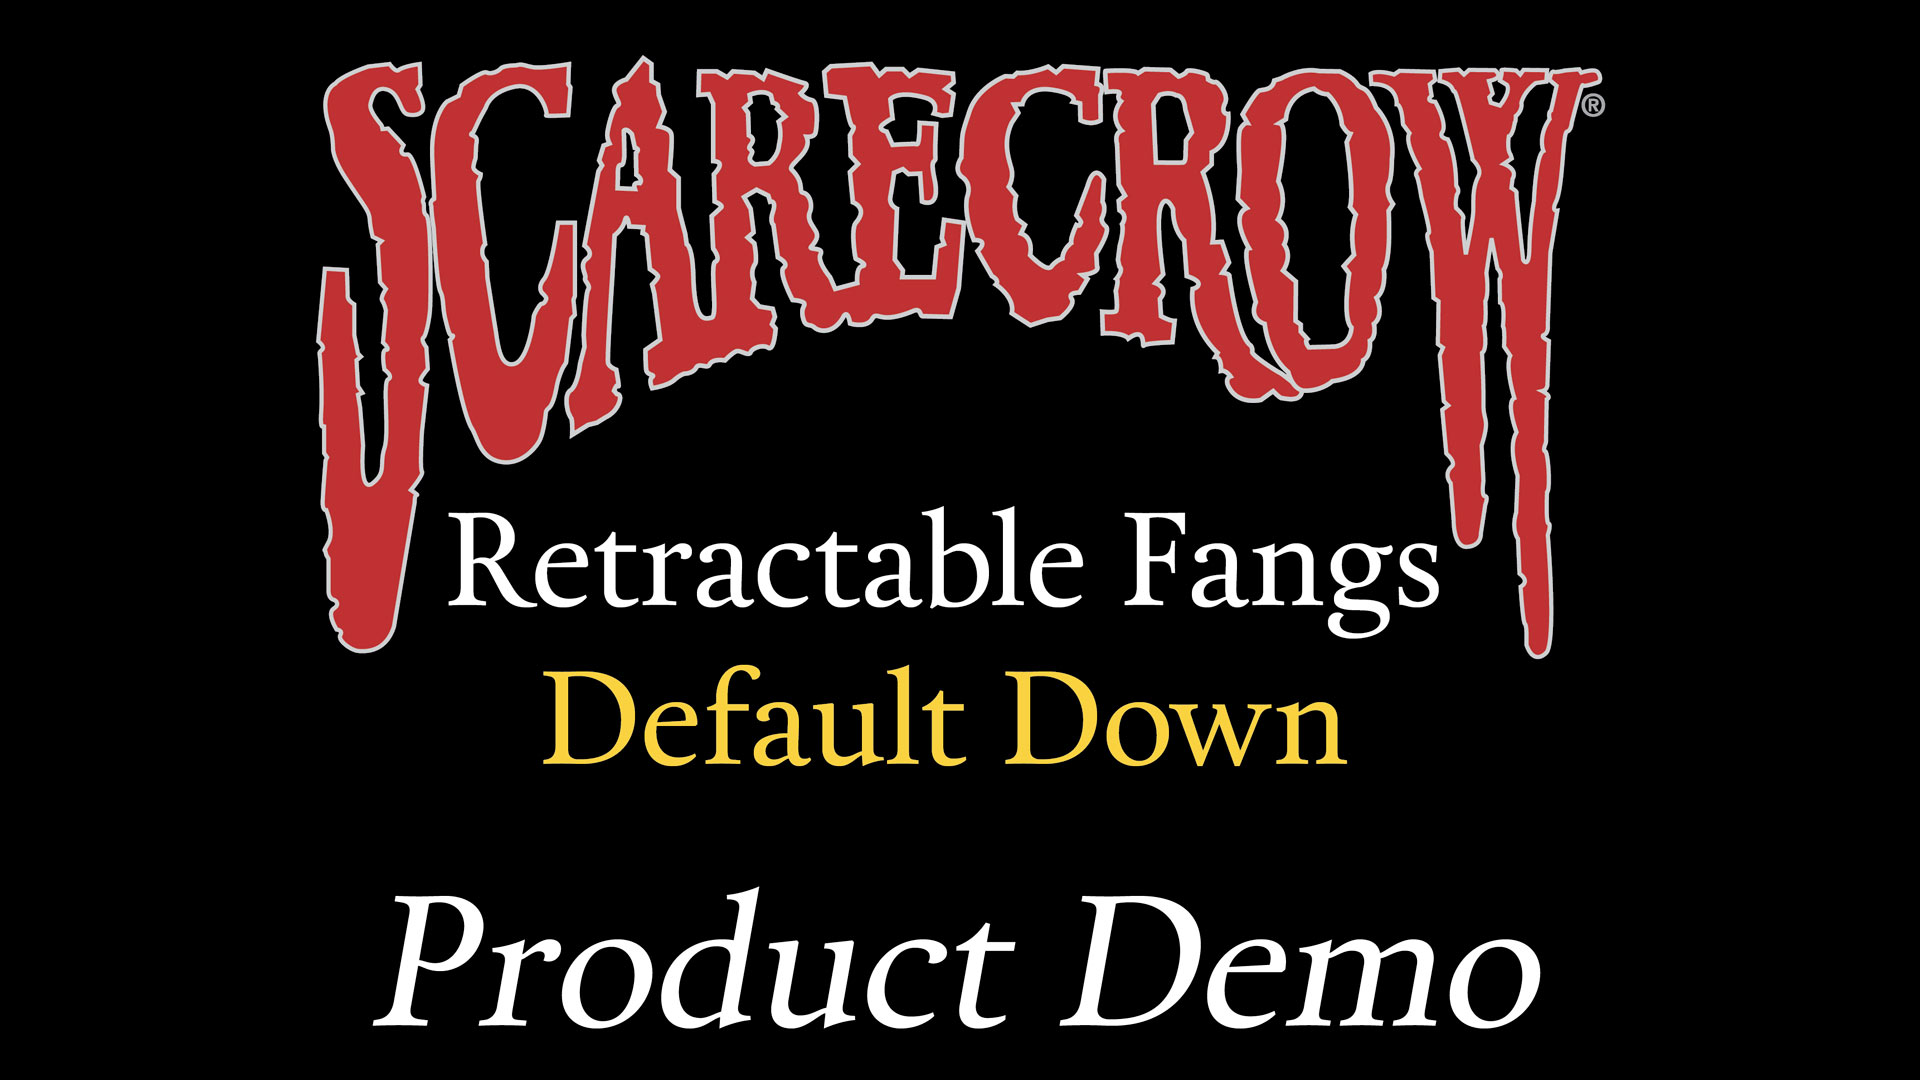 Retractable Fangs: Default Down